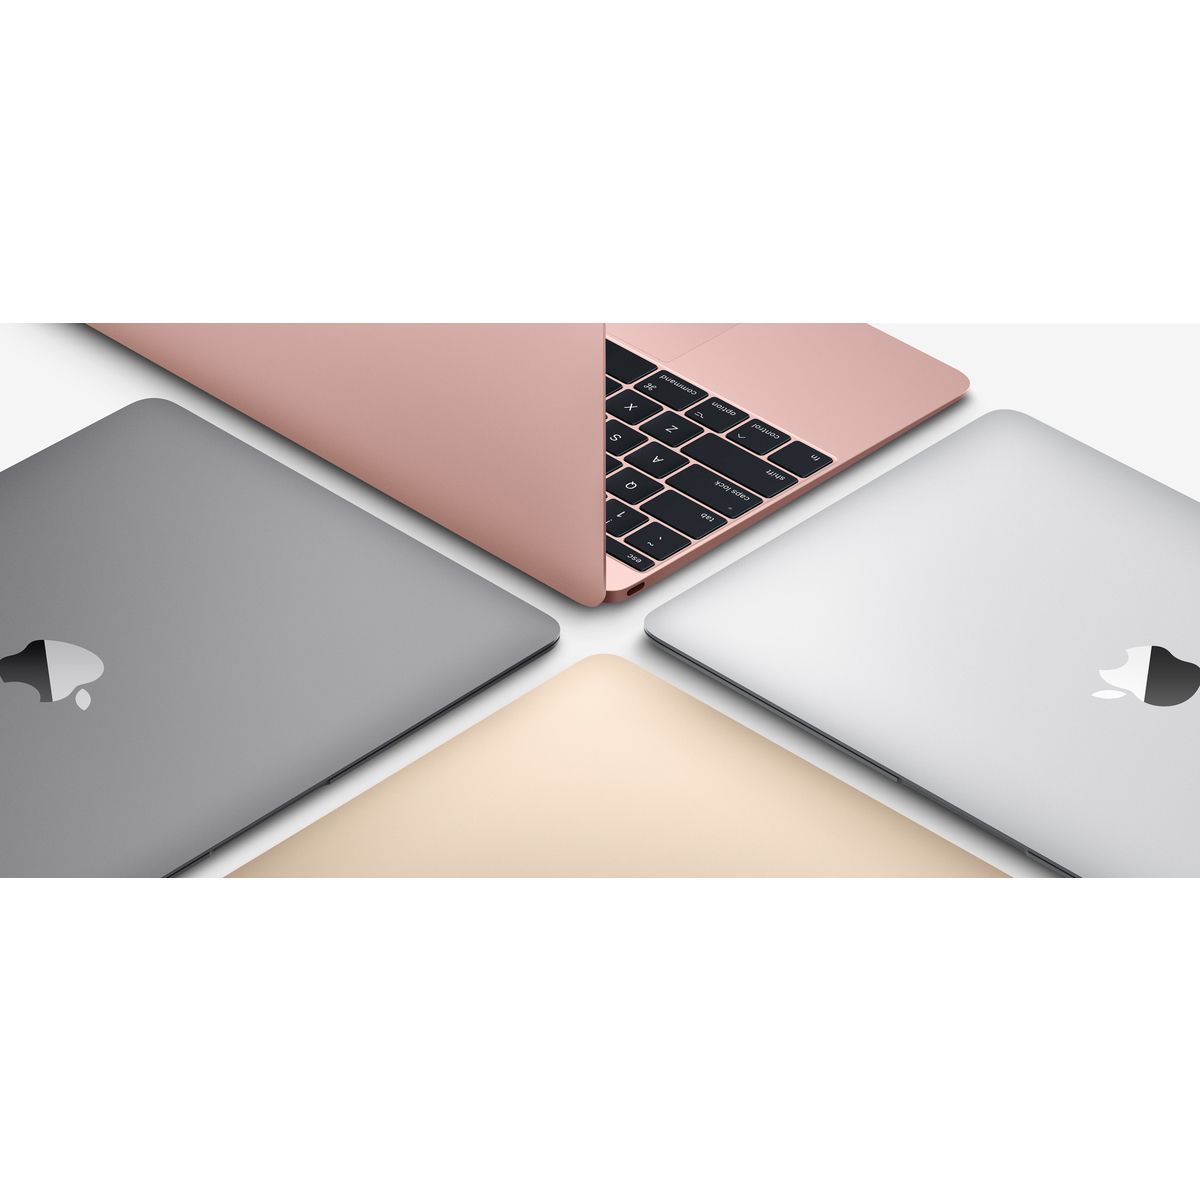 APPLE Ordinateur portable Macbook MNYG2FN/A - Gris sidéral